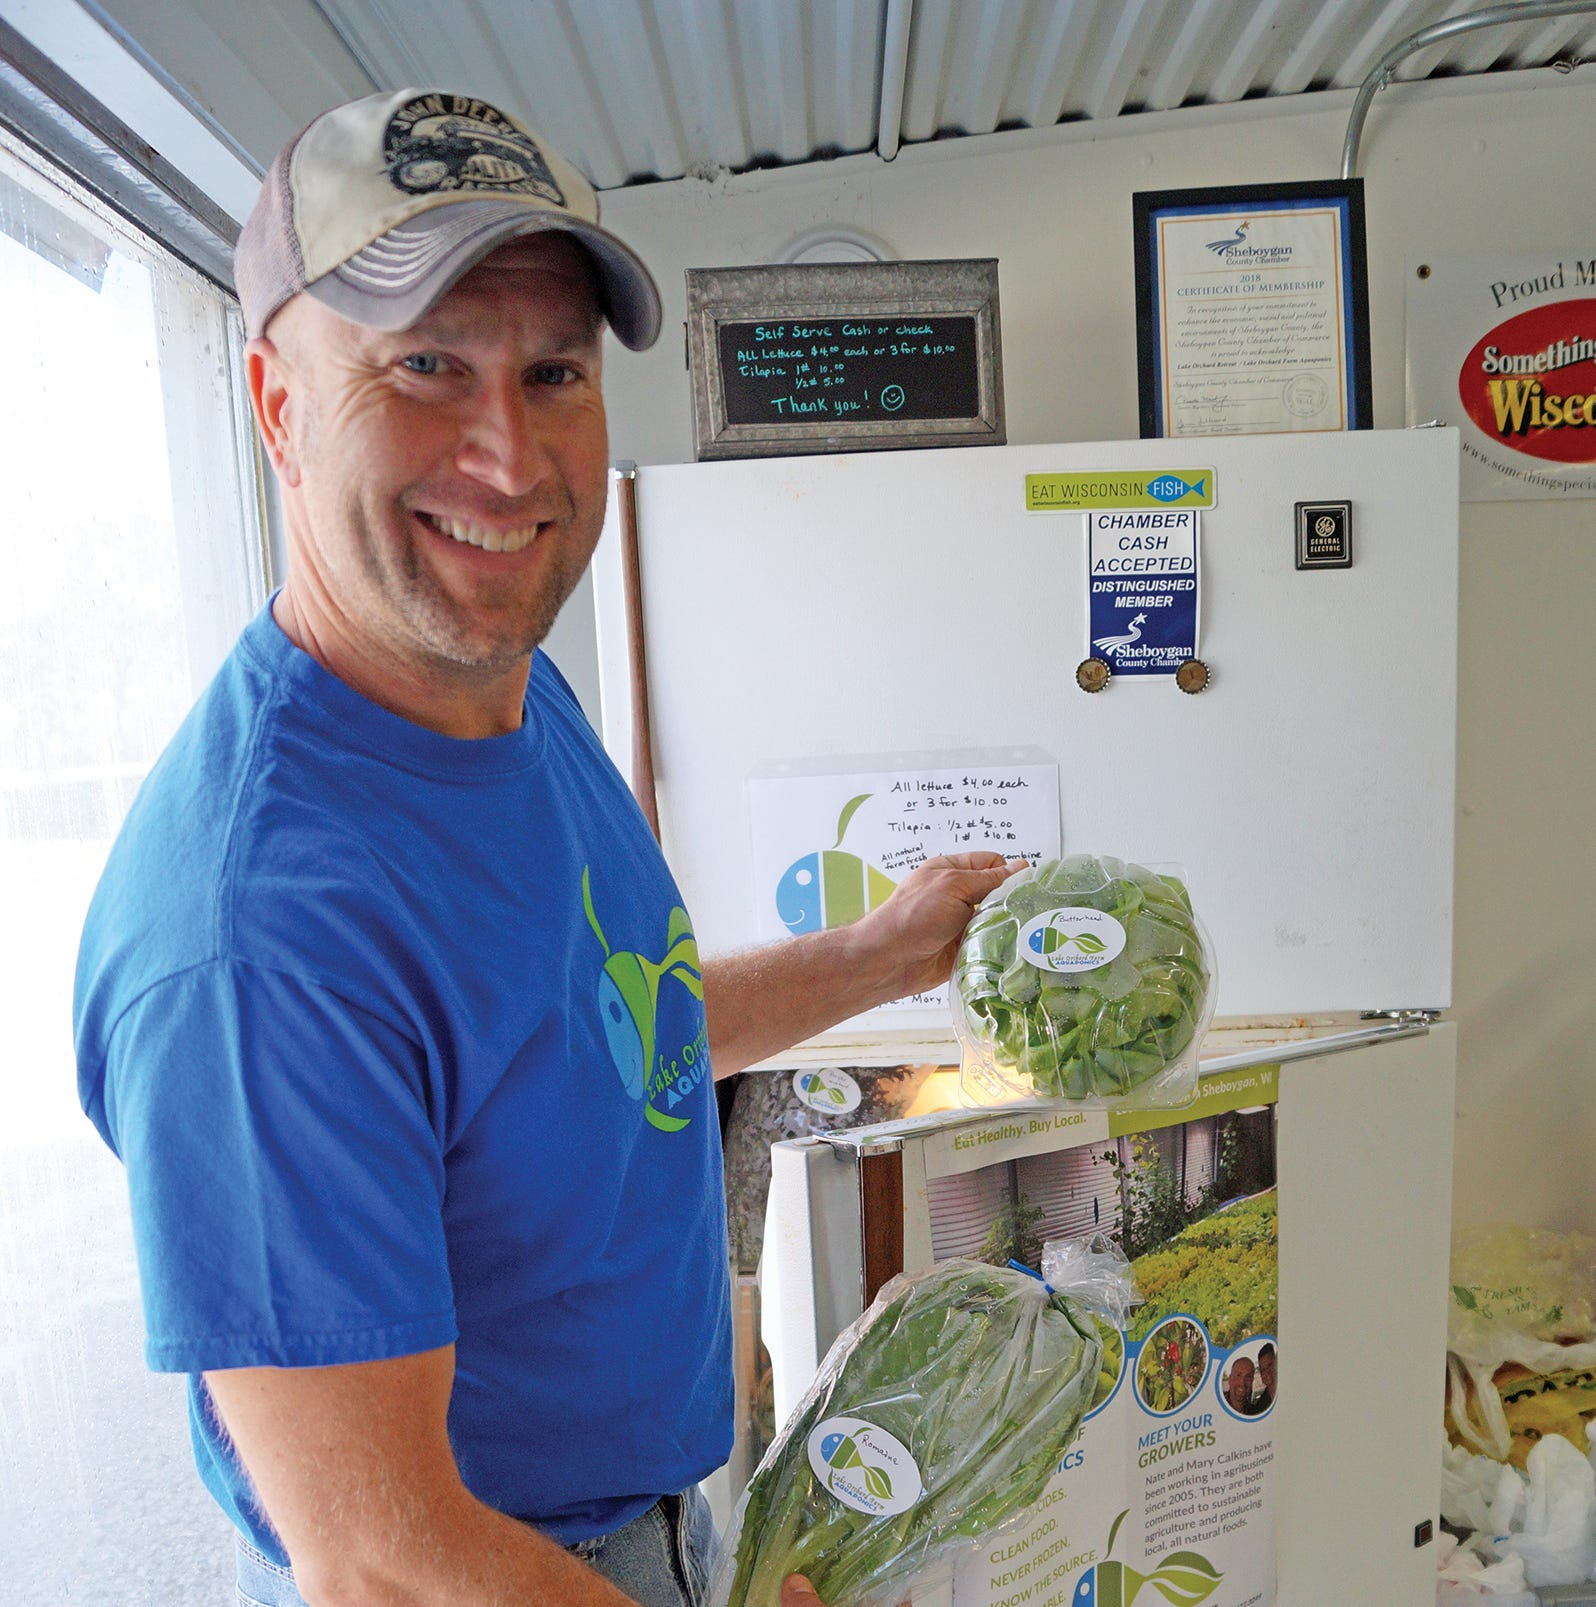 Aquaponics provides stability, livelihood for Sheboygan farmers